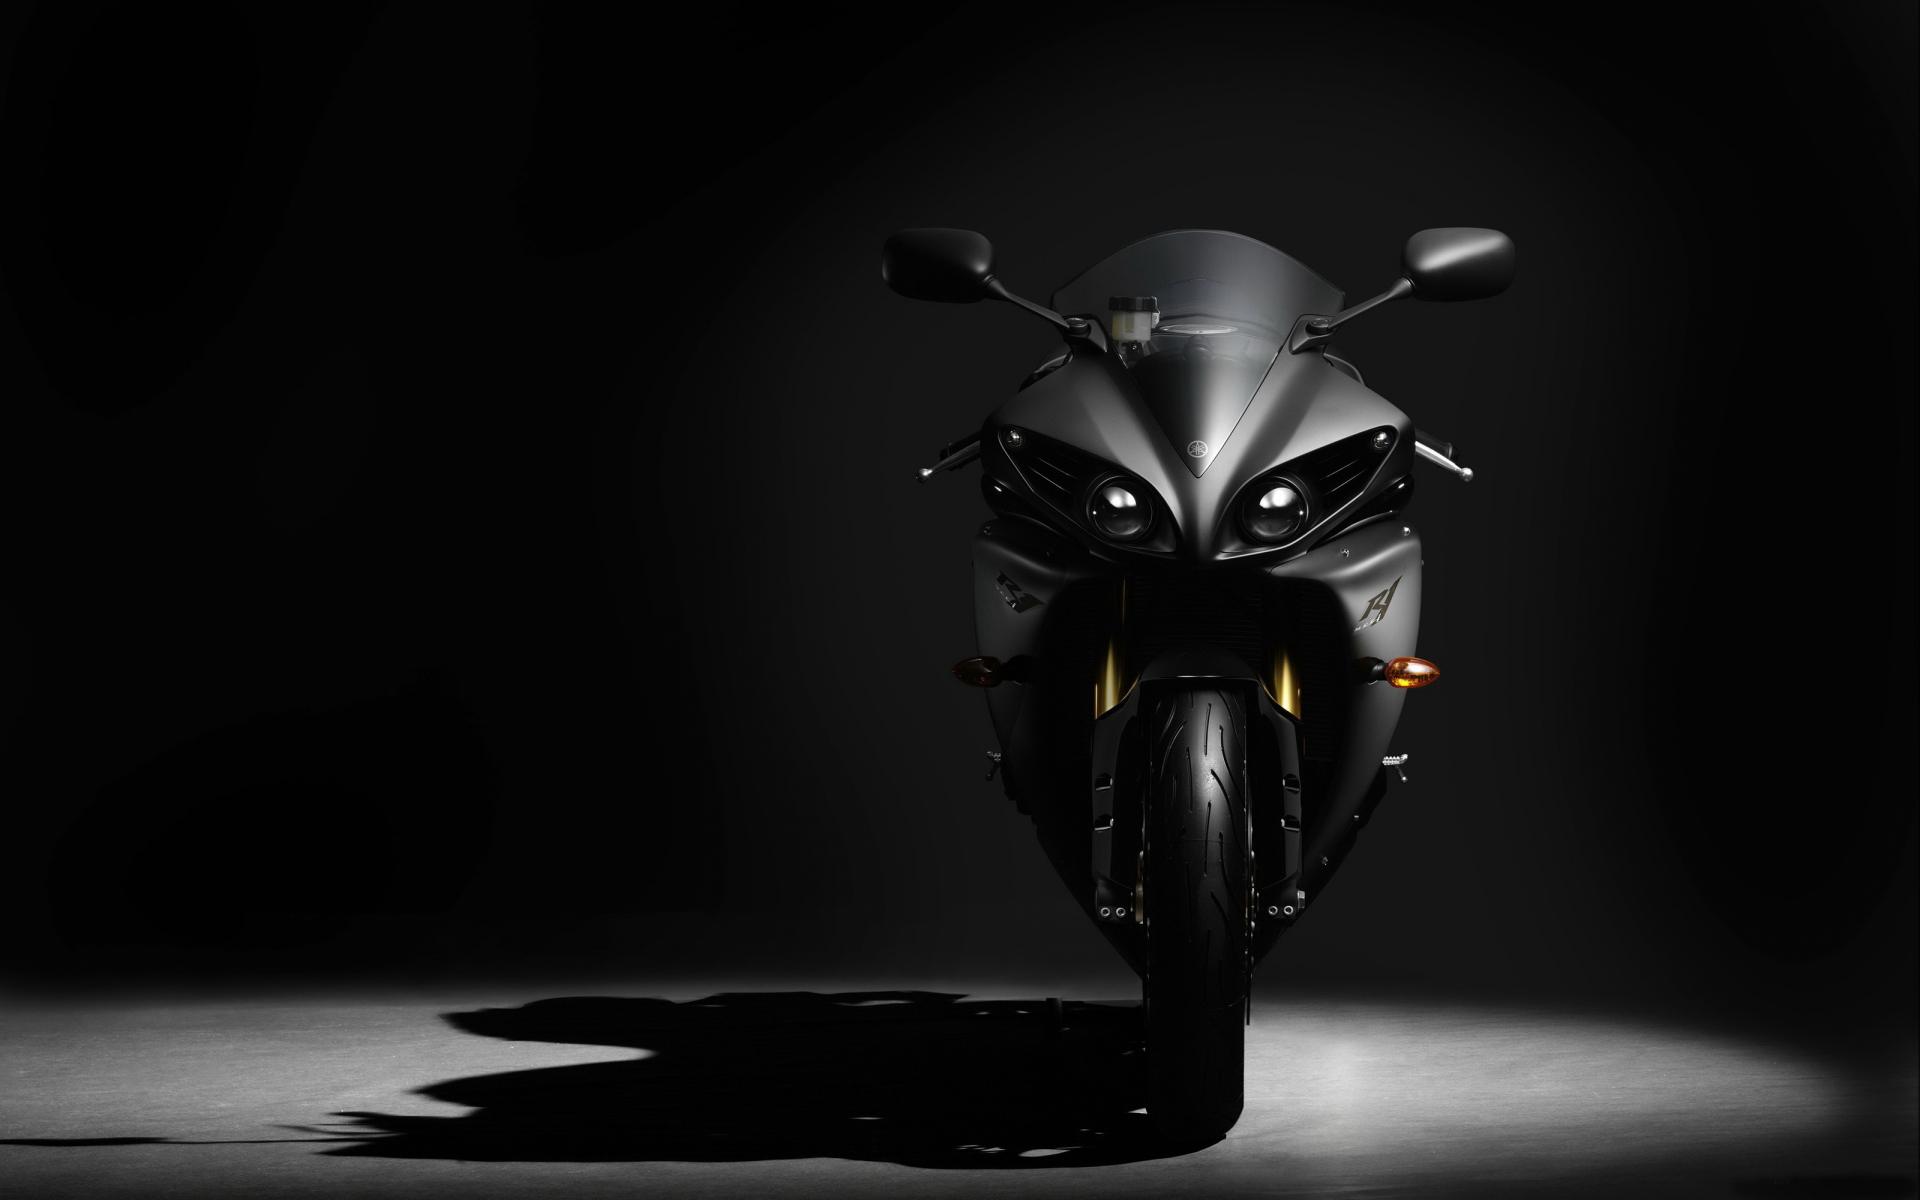 Download Black Bike Wallpaper 33153